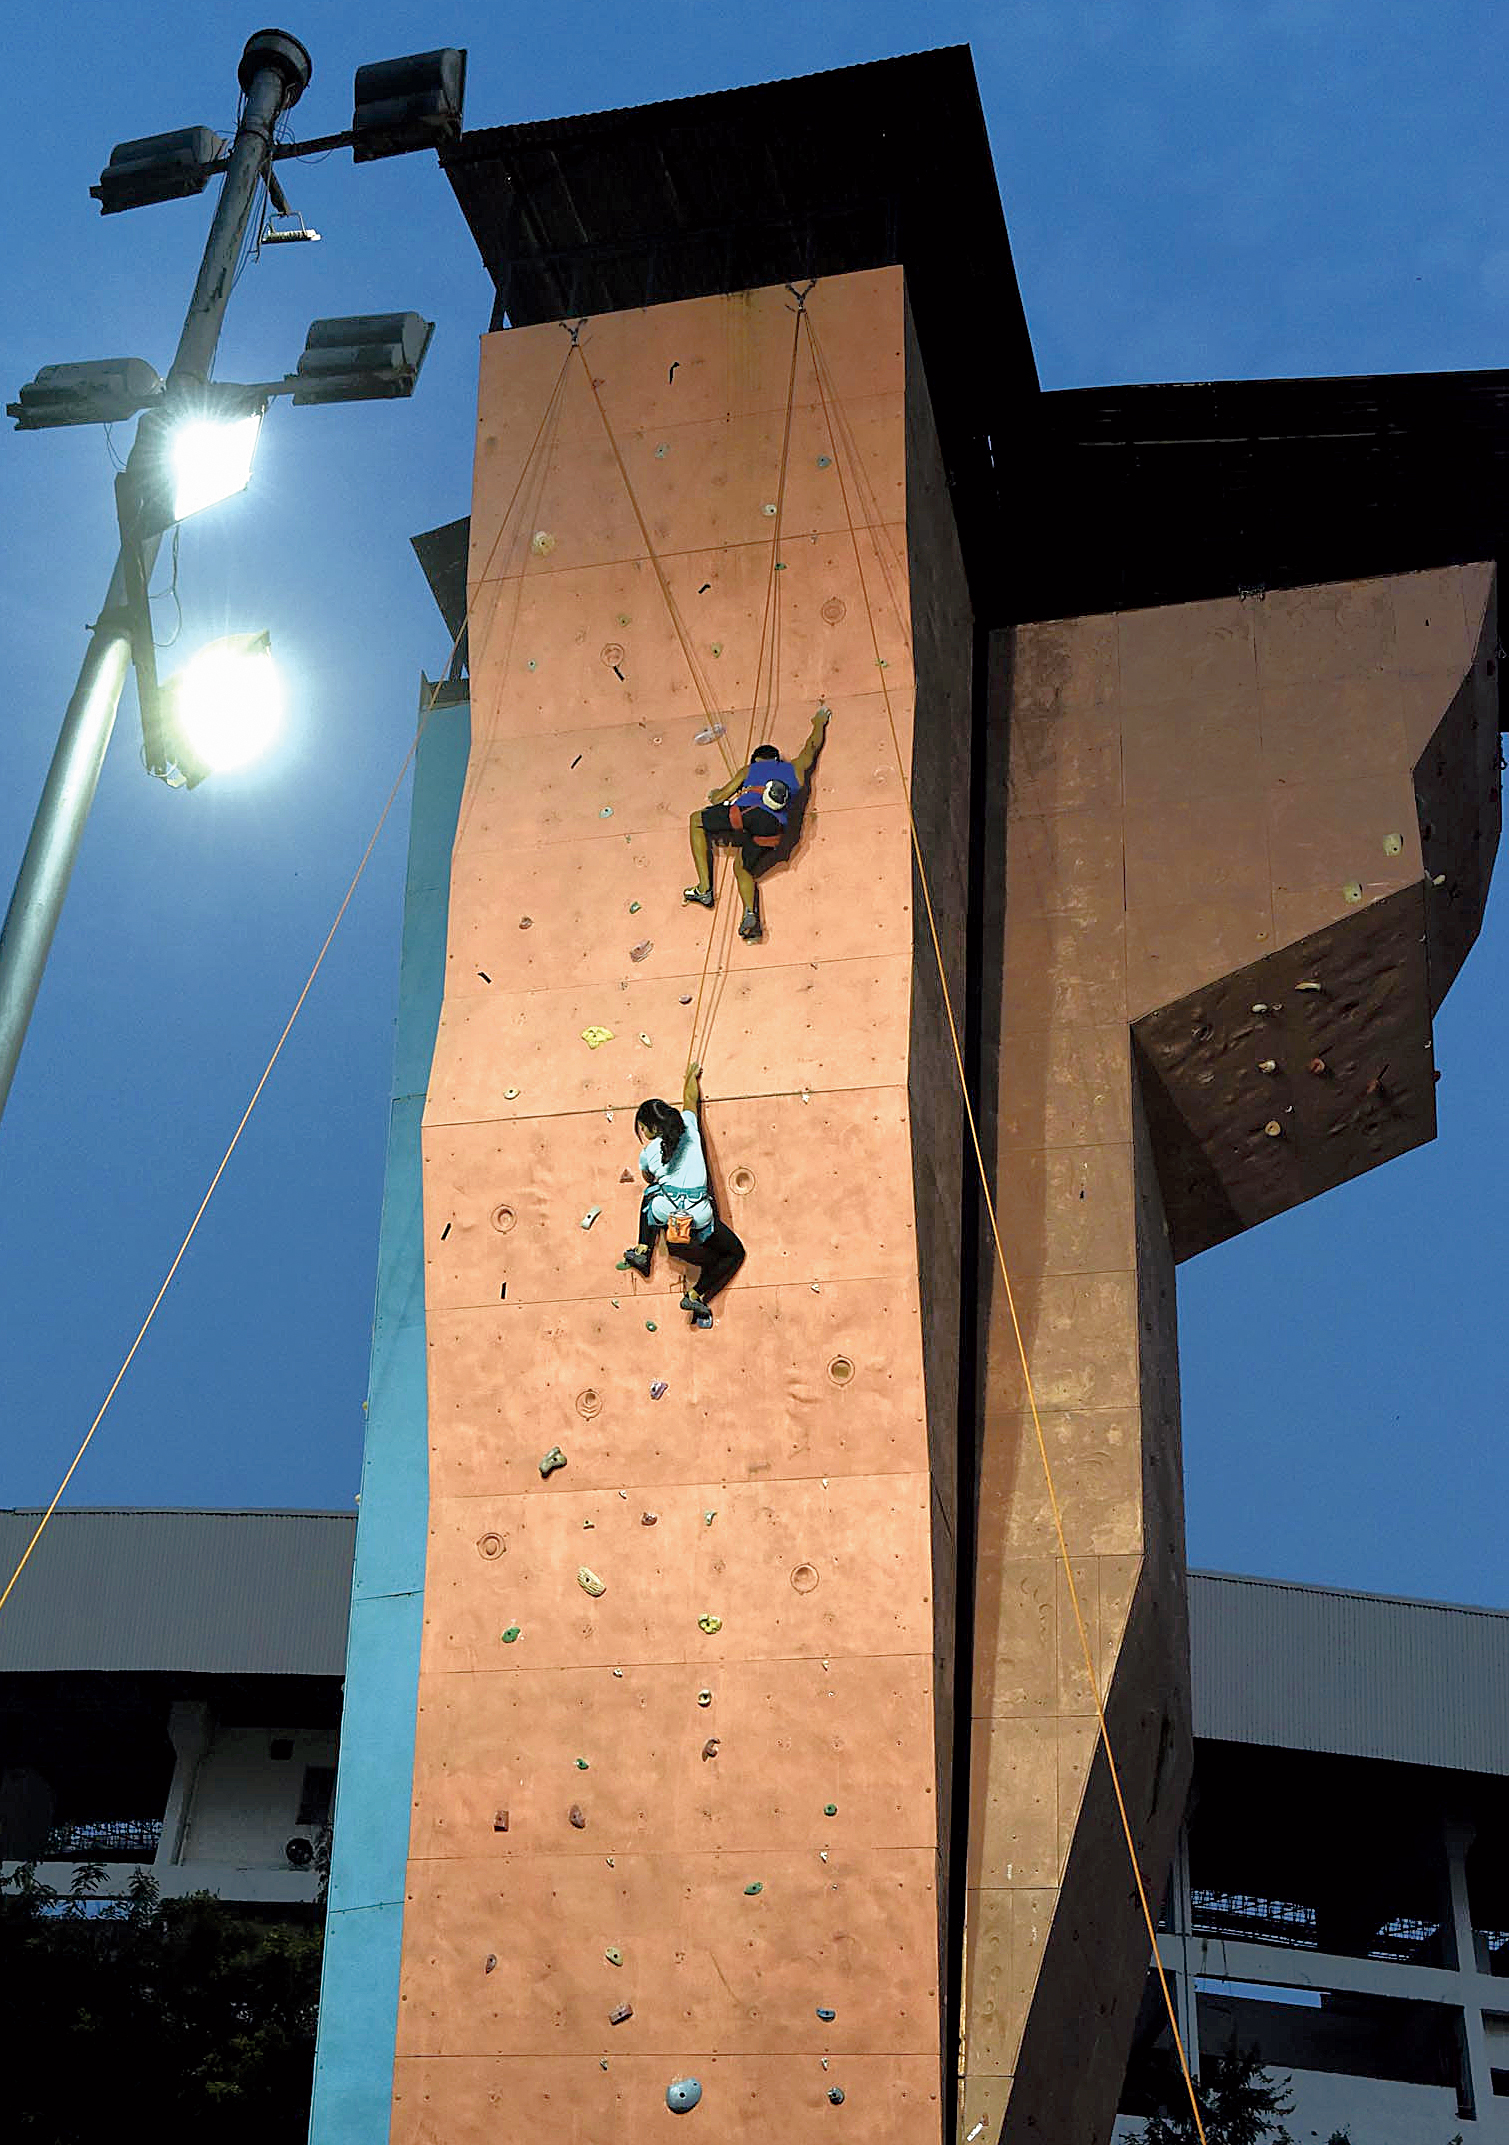 Anwesha Konar and Suraj Singh practise at Salt Lake stadium's sport climbing wall.